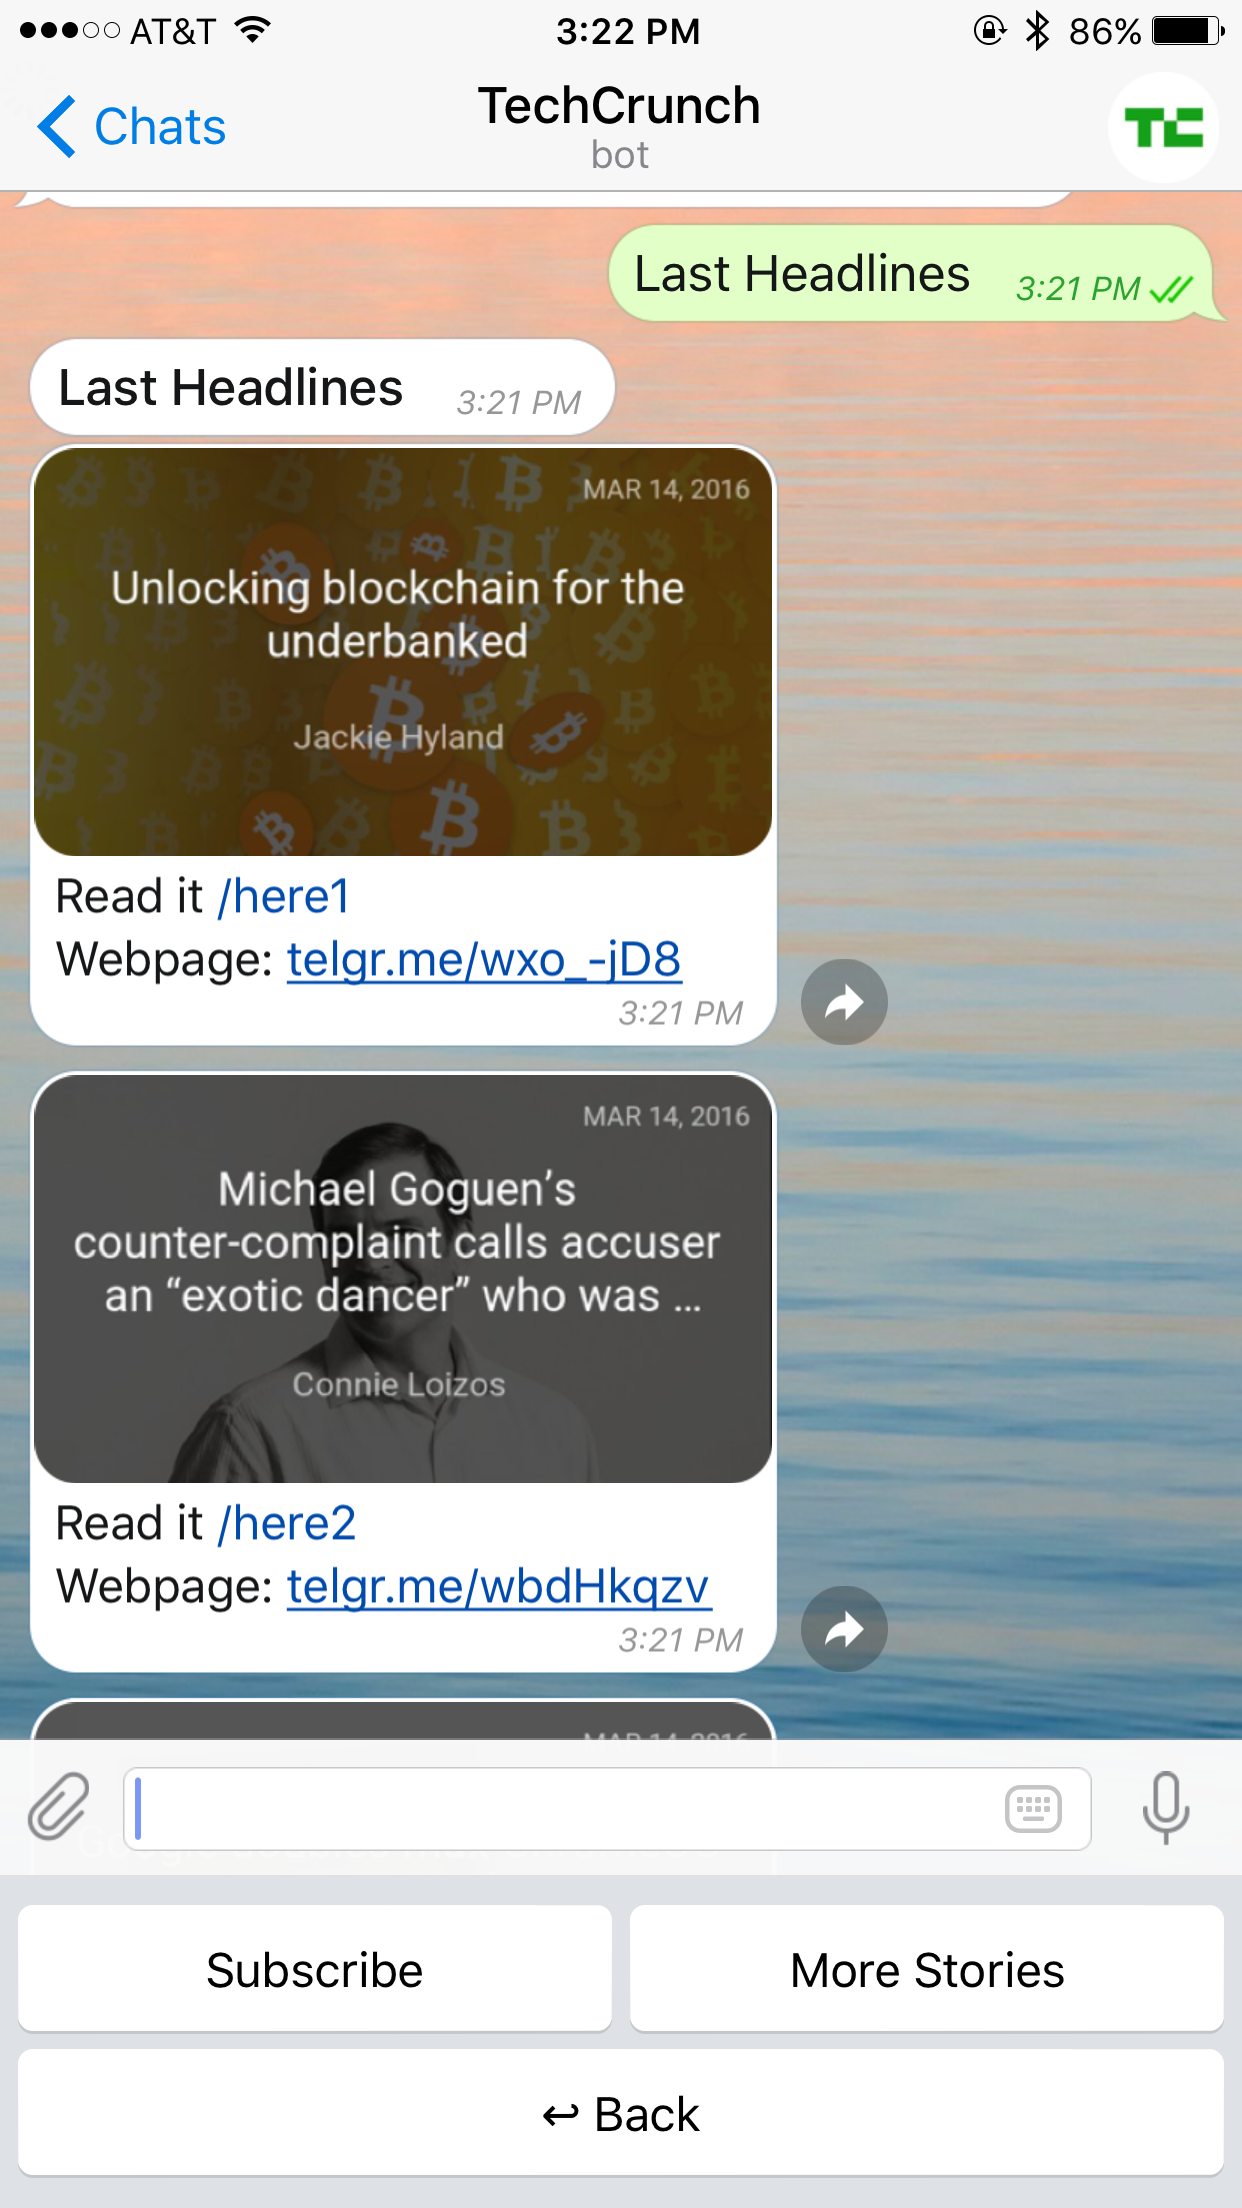 Check out the new AI-powered TechCrunch news bot on Telegram